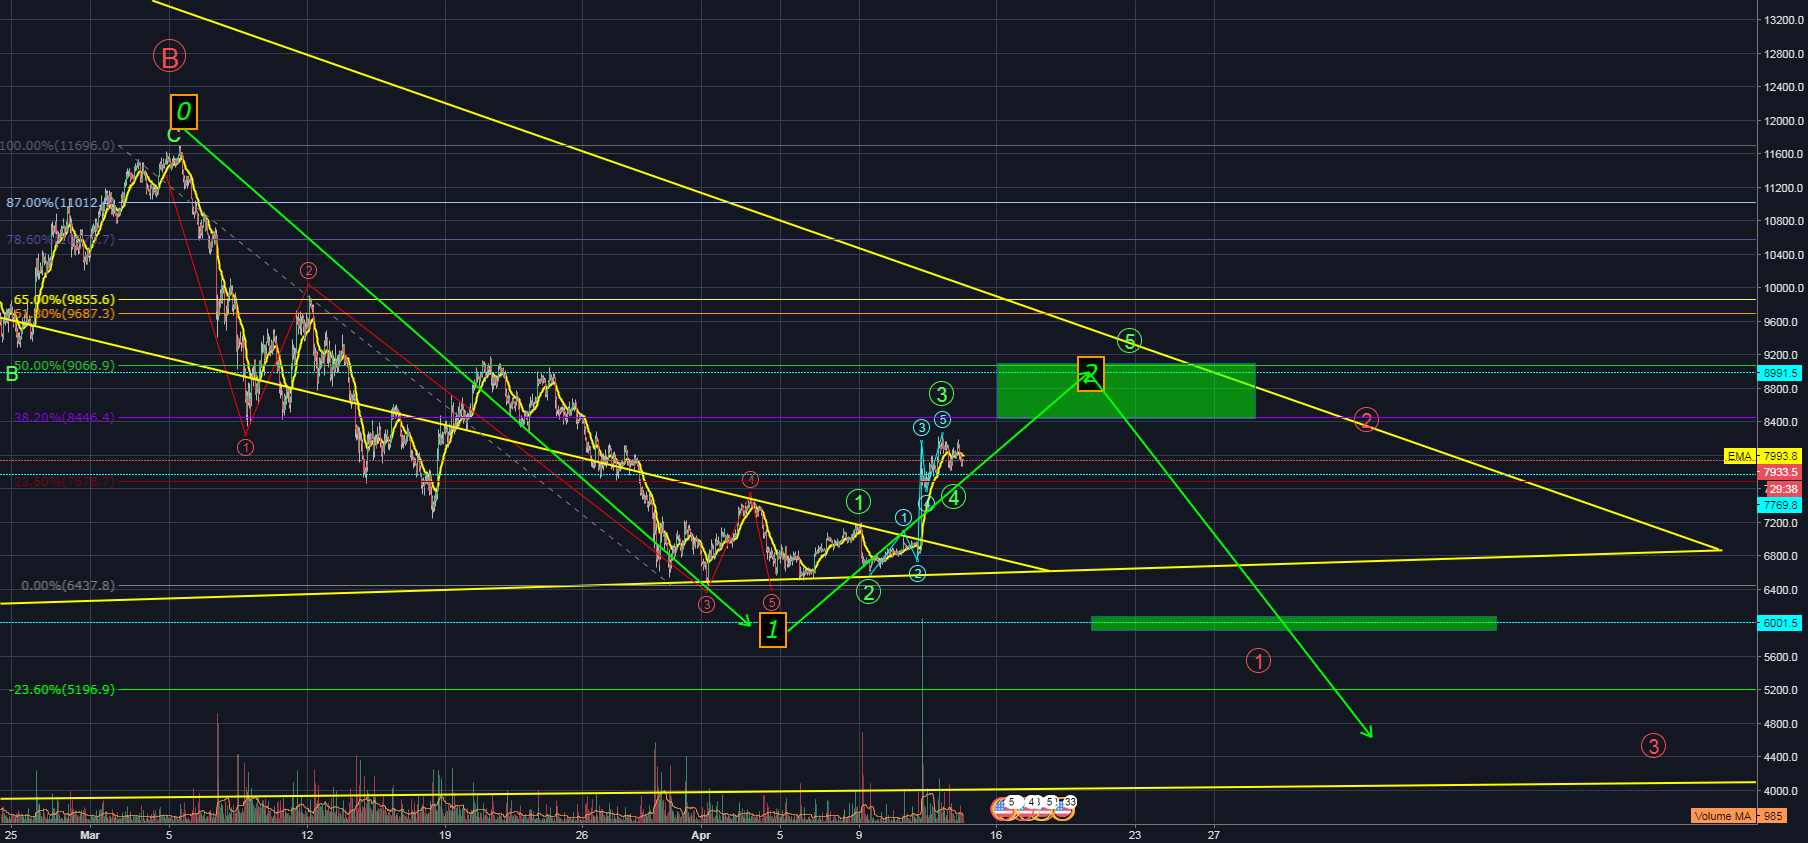 BTC/USD BITCOIN VIDEO UPDATE APRIL 13/14th - PART 2